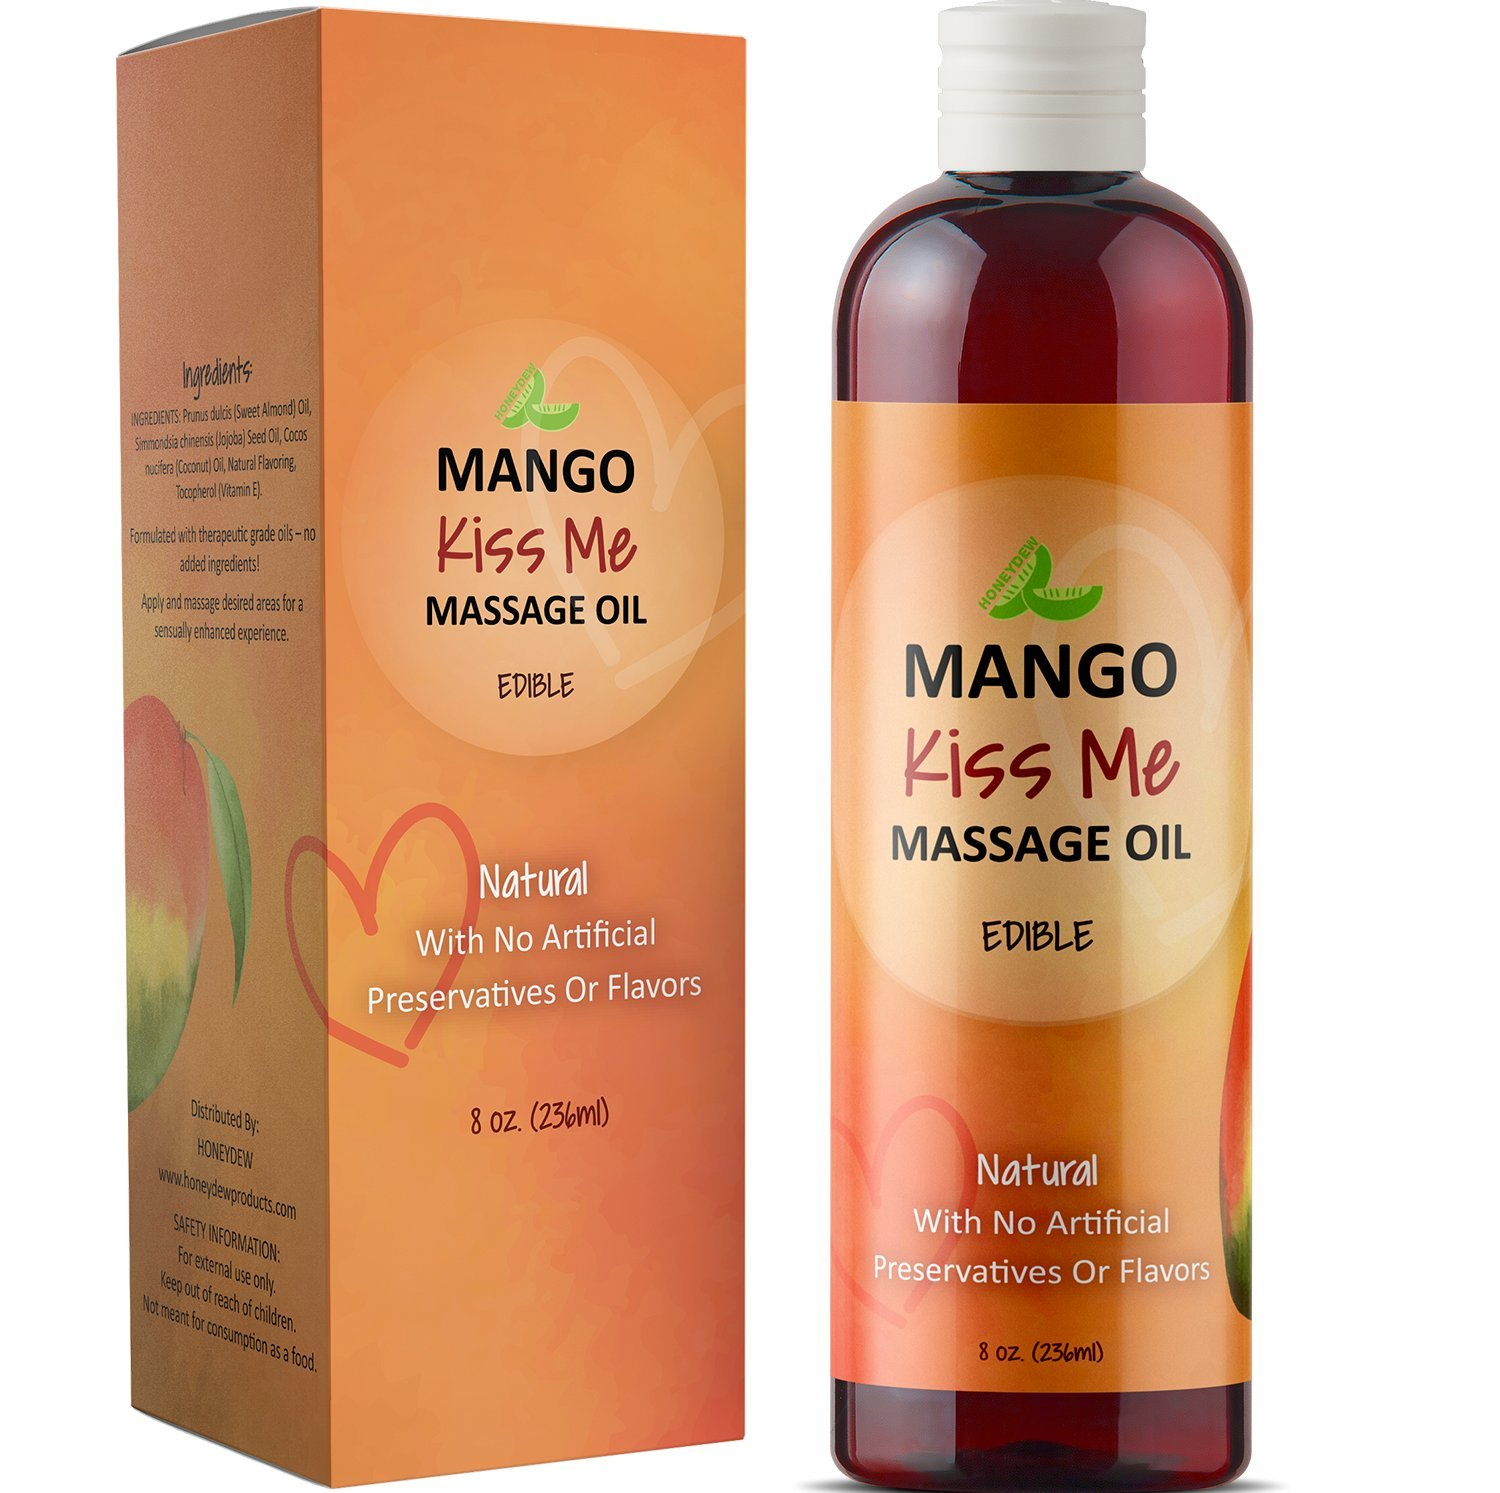 Healing Massage Therapy Oil for Men & Women - Relaxing Therapeutic Edible Mango Body Oil for Healthy Hydrated Skin - Anti-Aging Natural Oils Jojoba Sweet Almond & Coconut Oil for Skin & Muscle Relief : Beauty